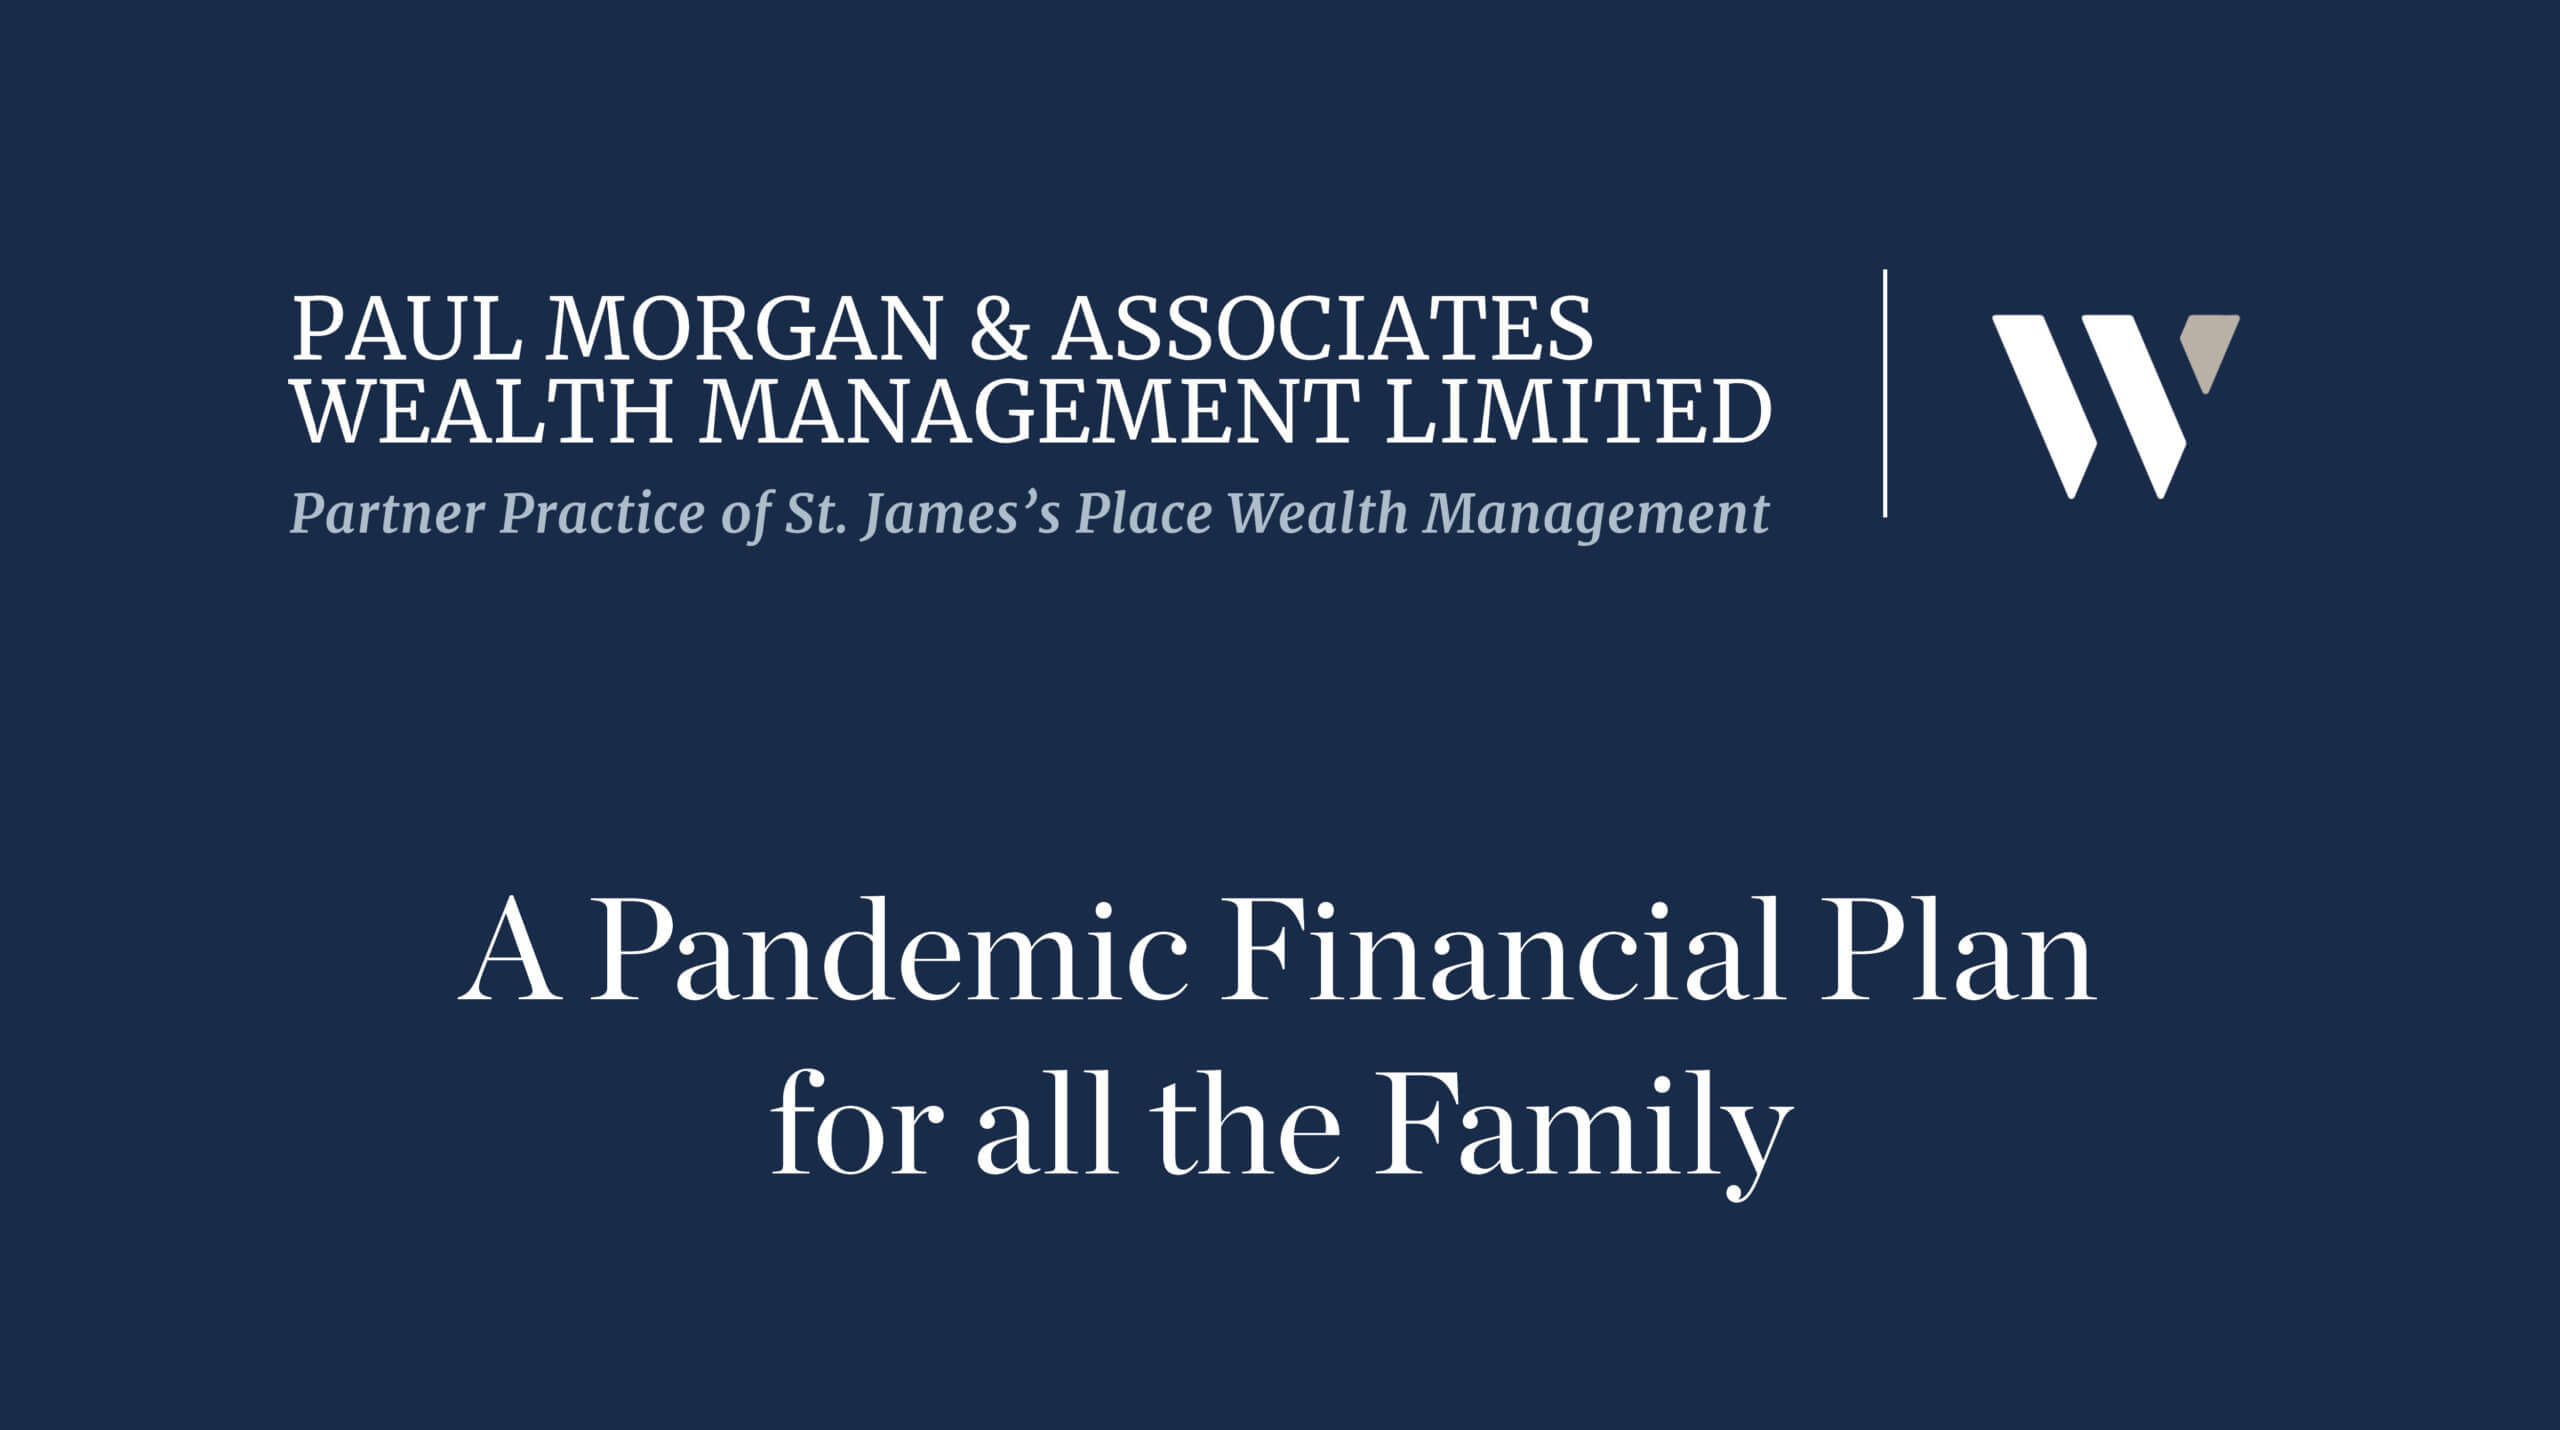 Paul Morgan & Associates Wealth Management Limited - Whyfield Hear it from the Experts Feature